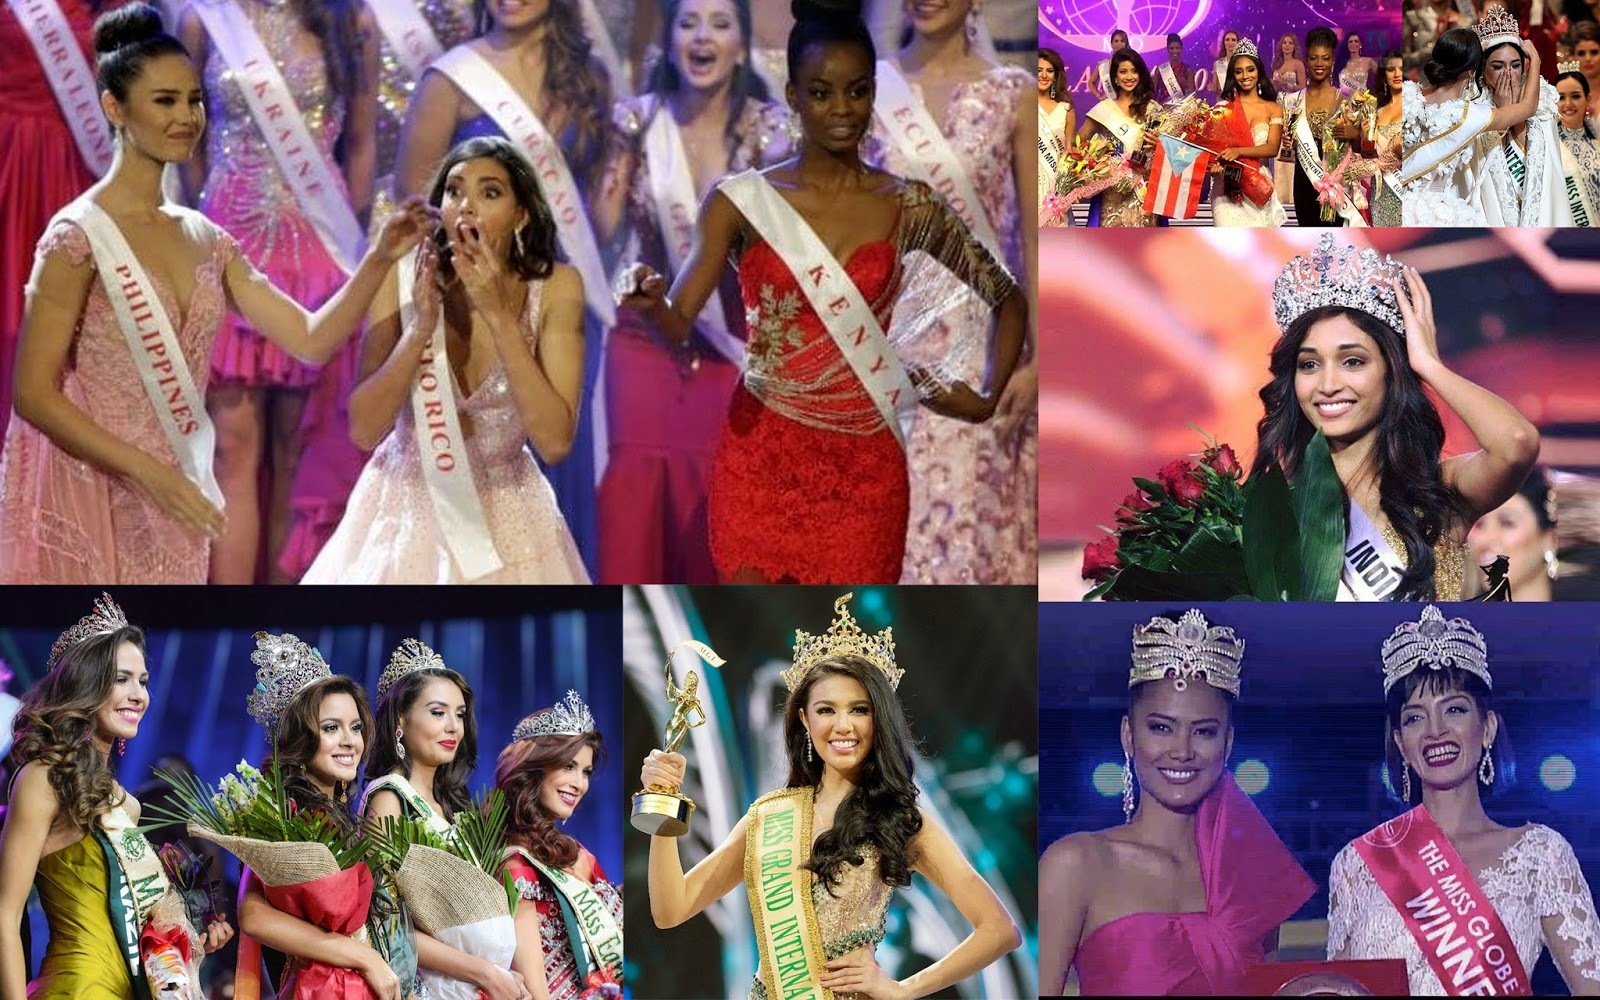 beauty contests harmful essay This essay on child beauty pageants these contests often evoke the ethos of small-town ultius, inc essay on the atrocities of child beauty pageants.